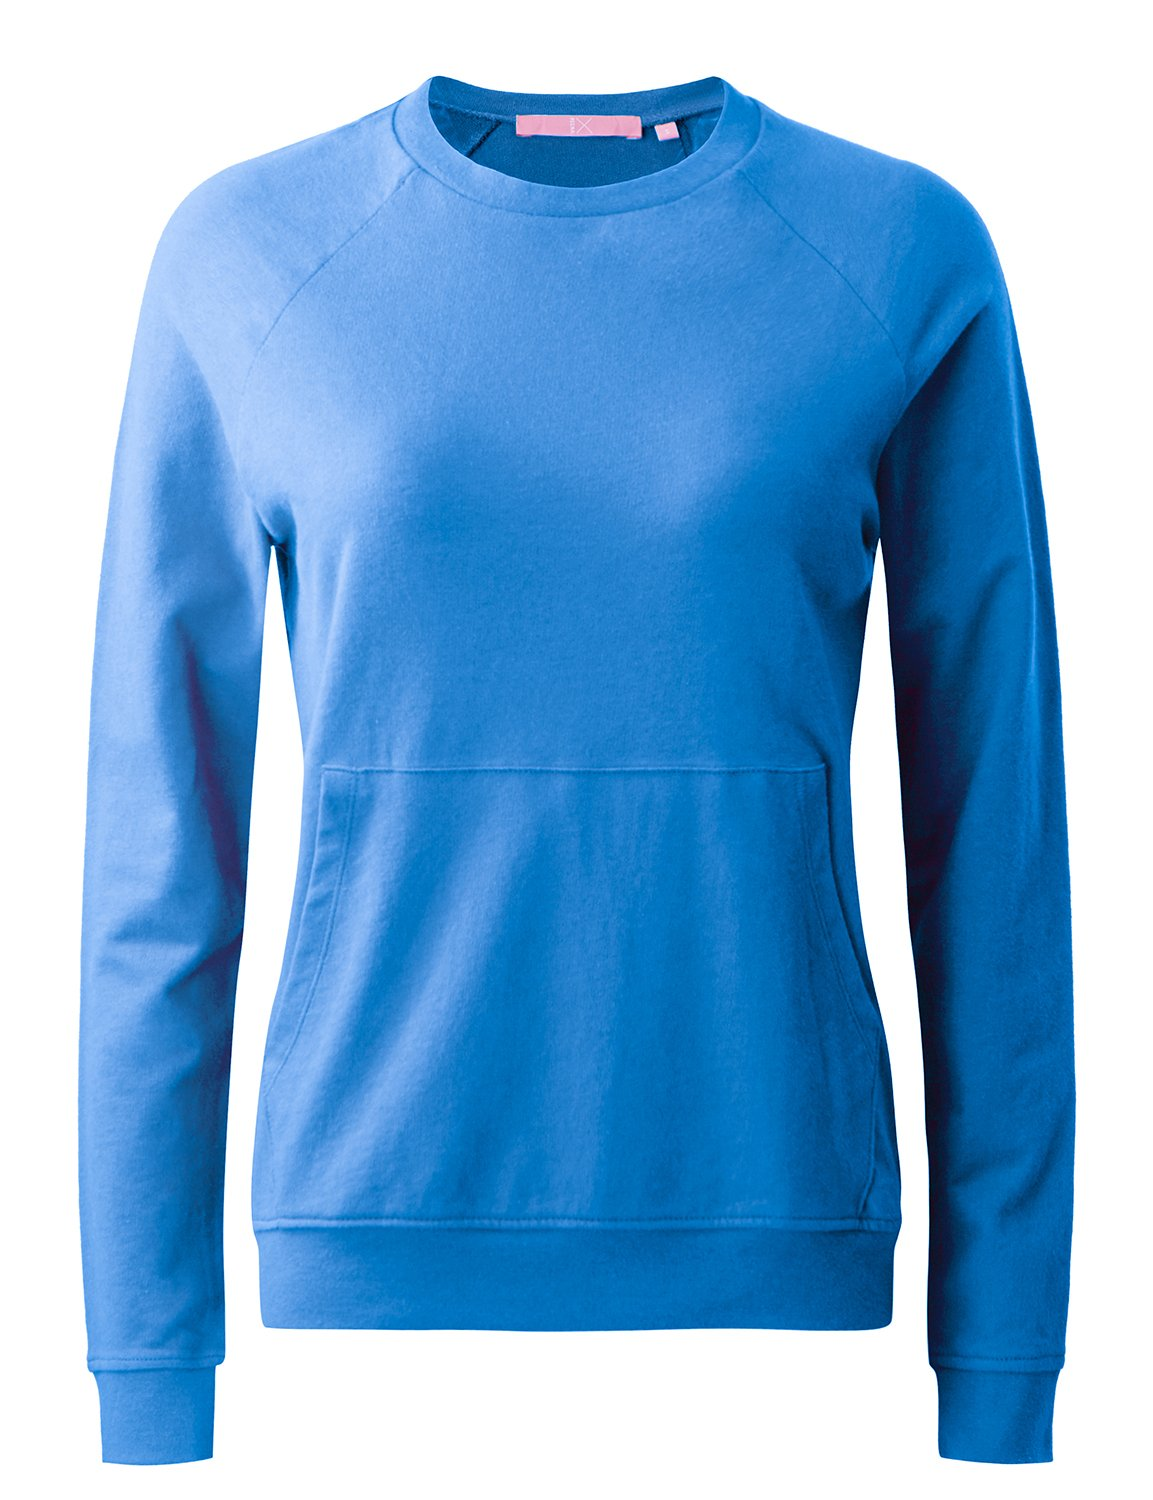 Regna X Womens Long Sleeve Crewneck Casual Color Block Sweatshirts for Women by Regna X